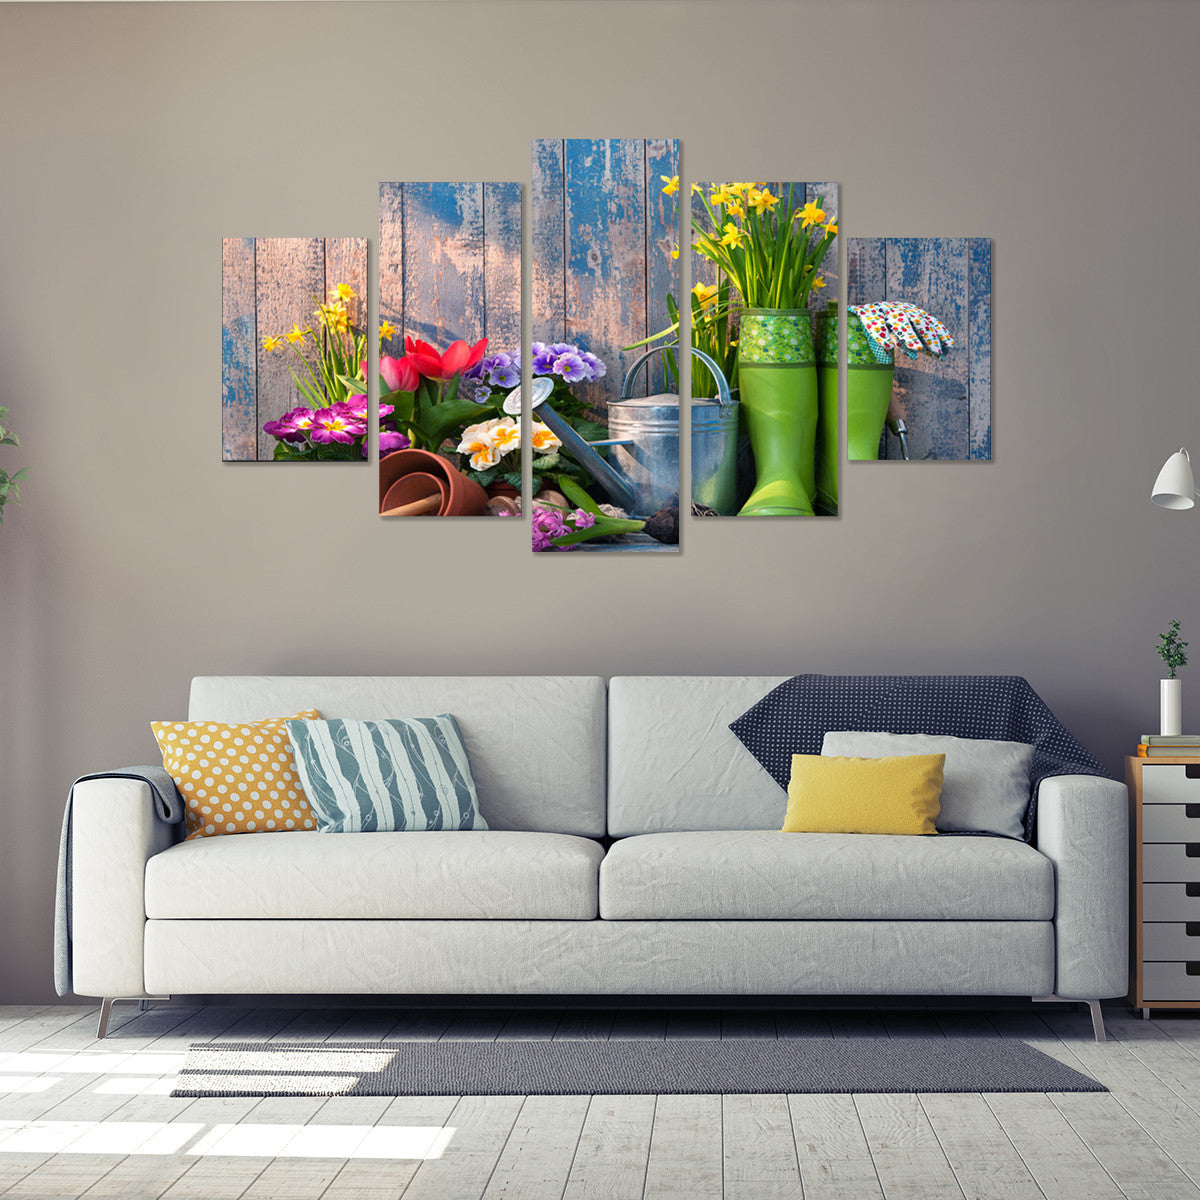 Gardener's Passion 5 Piece Canvas